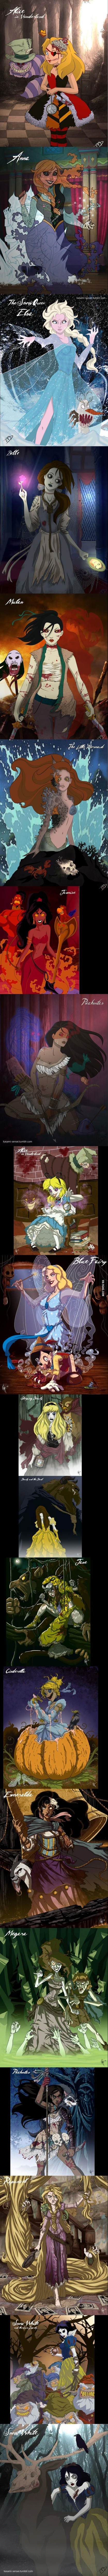 So... I Found This... Twisted Disney Ladies - 9GAG